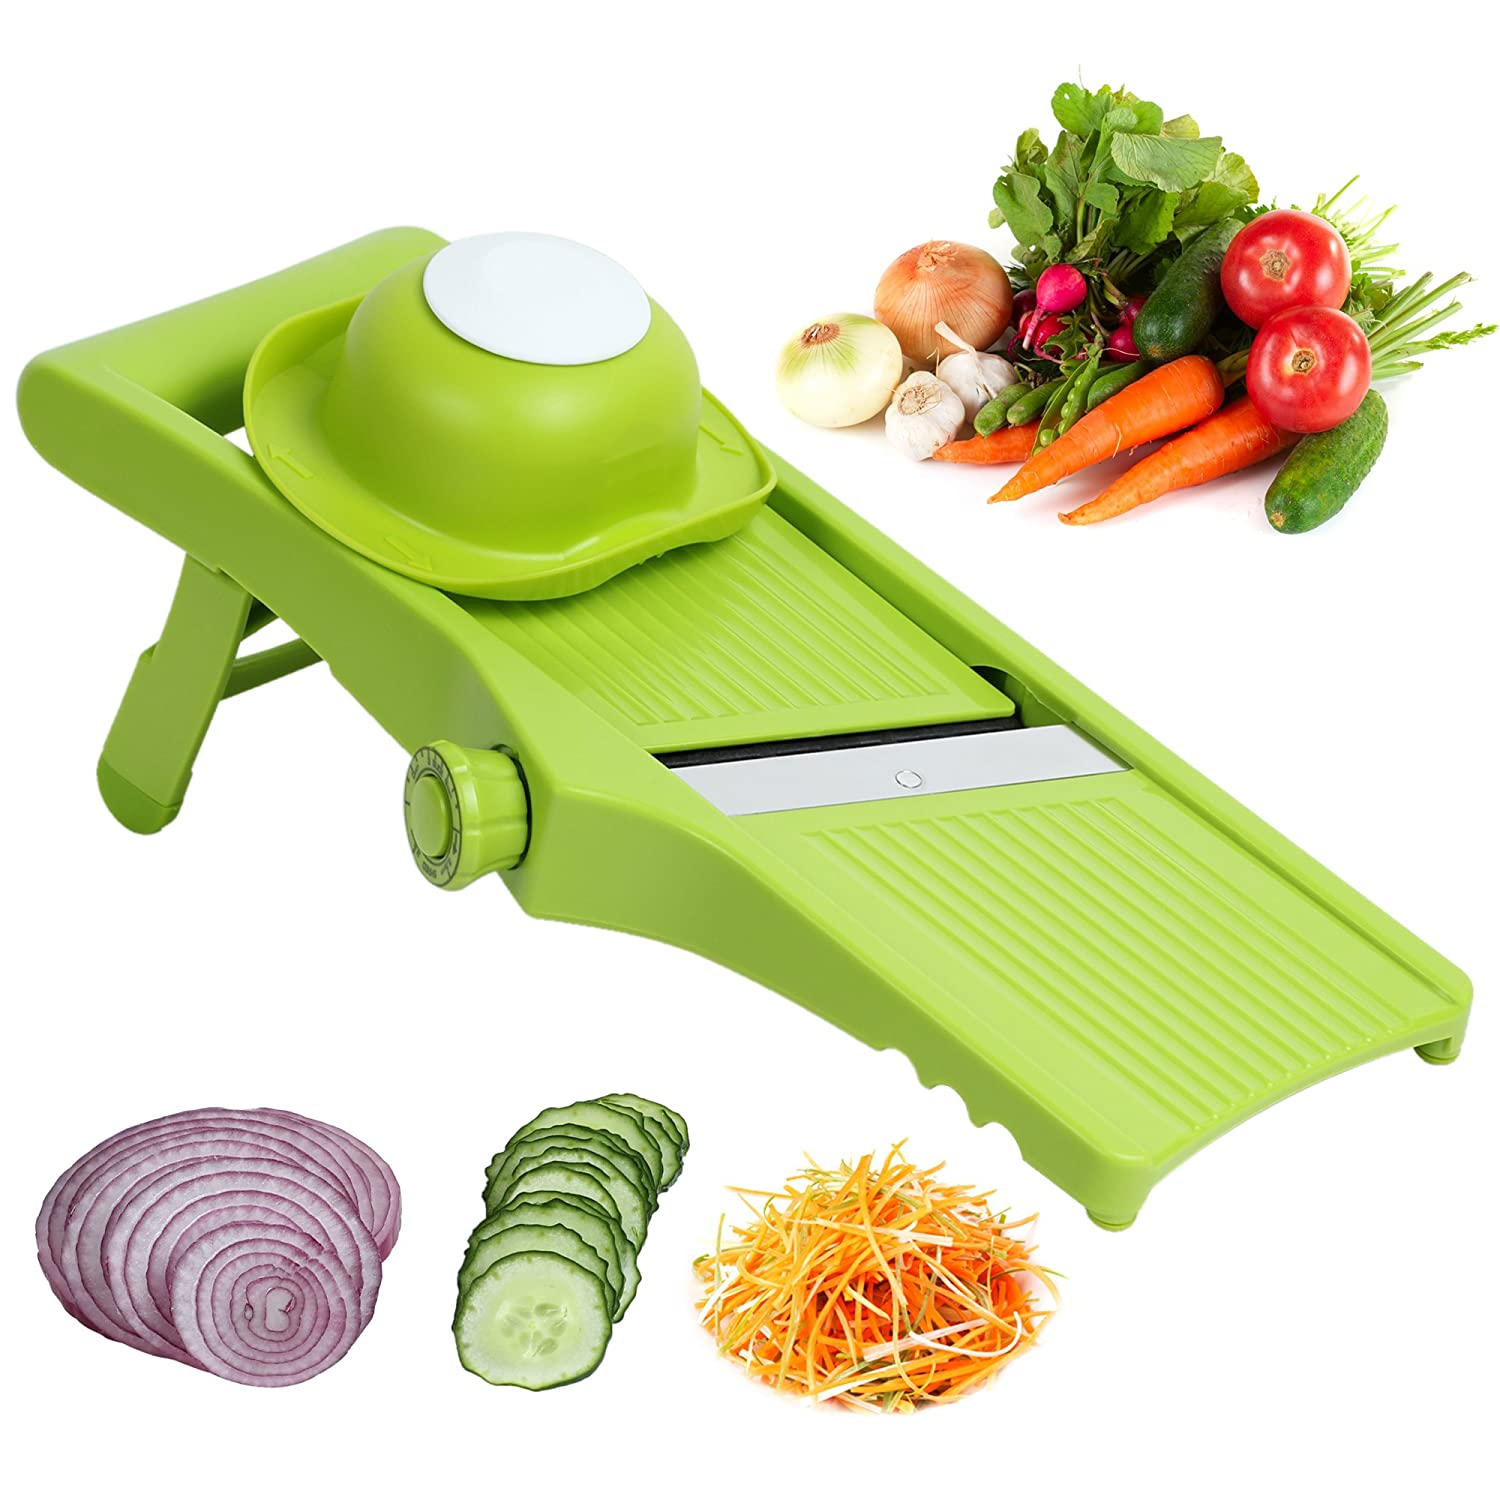 Matacol Mandoline Slicers Hand Held Food Fruit Cutter Vegetable Slicer and Julienne Strips French Fries Stainless Steel Integrated Blade with Food Holder